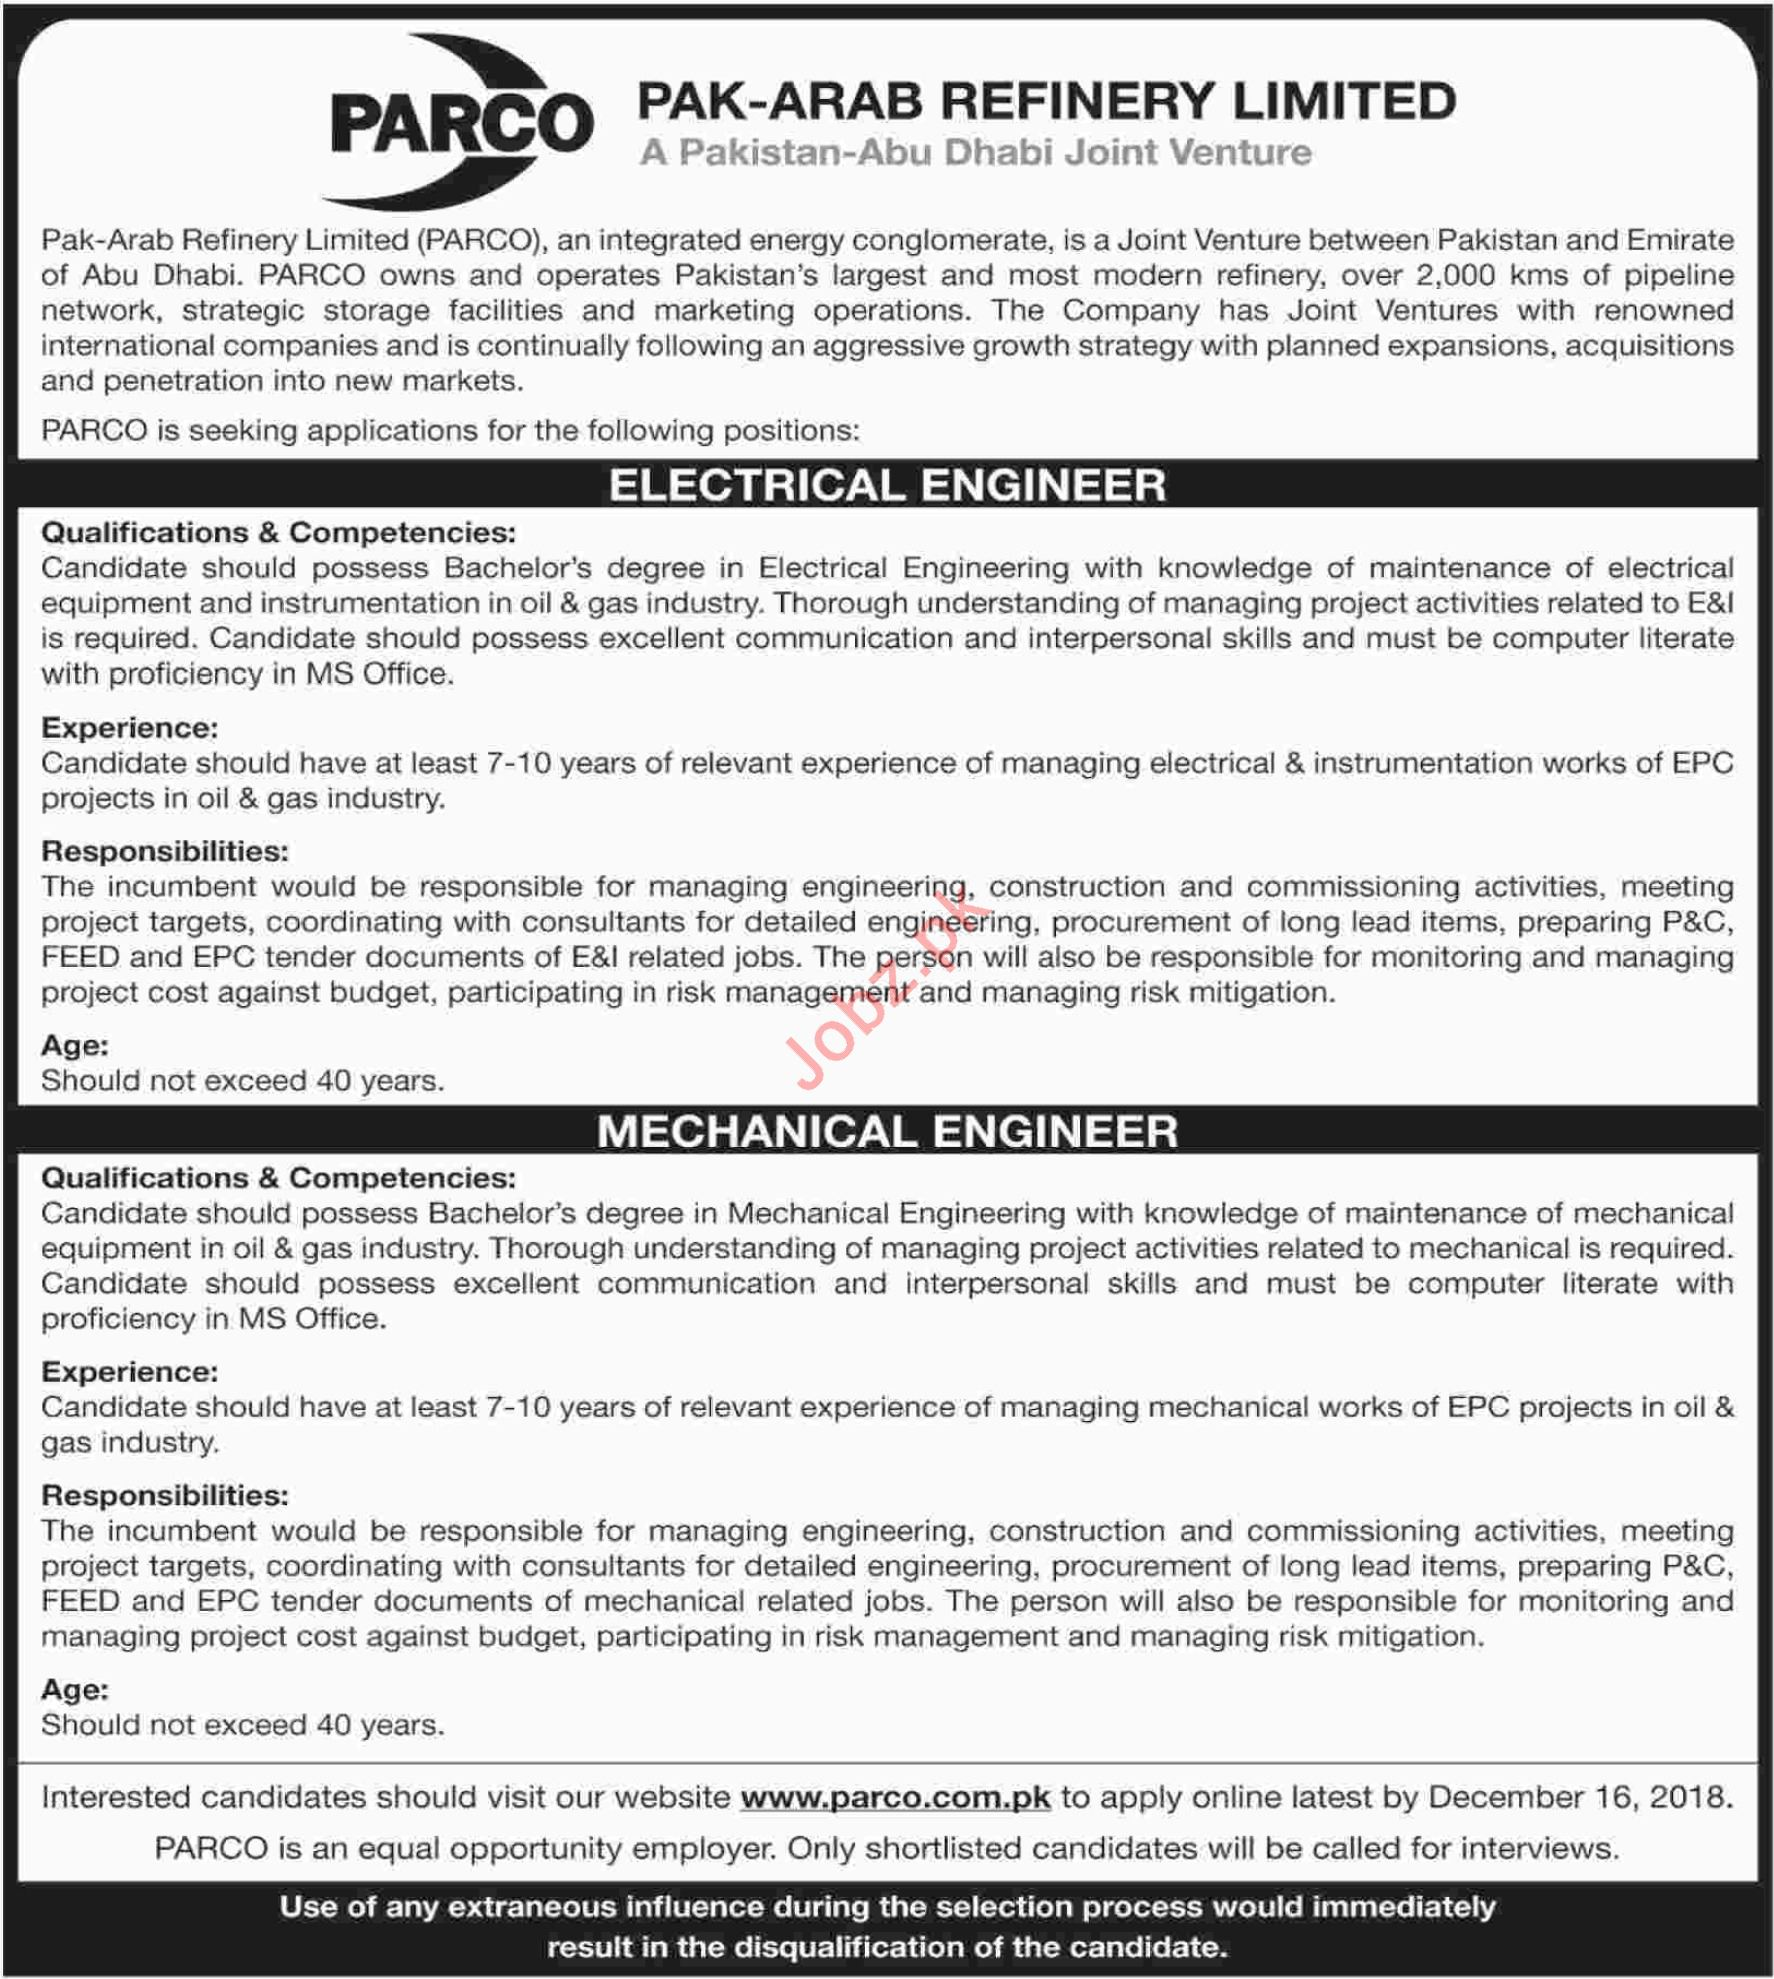 Electrical Engineer Jobs at PARCO